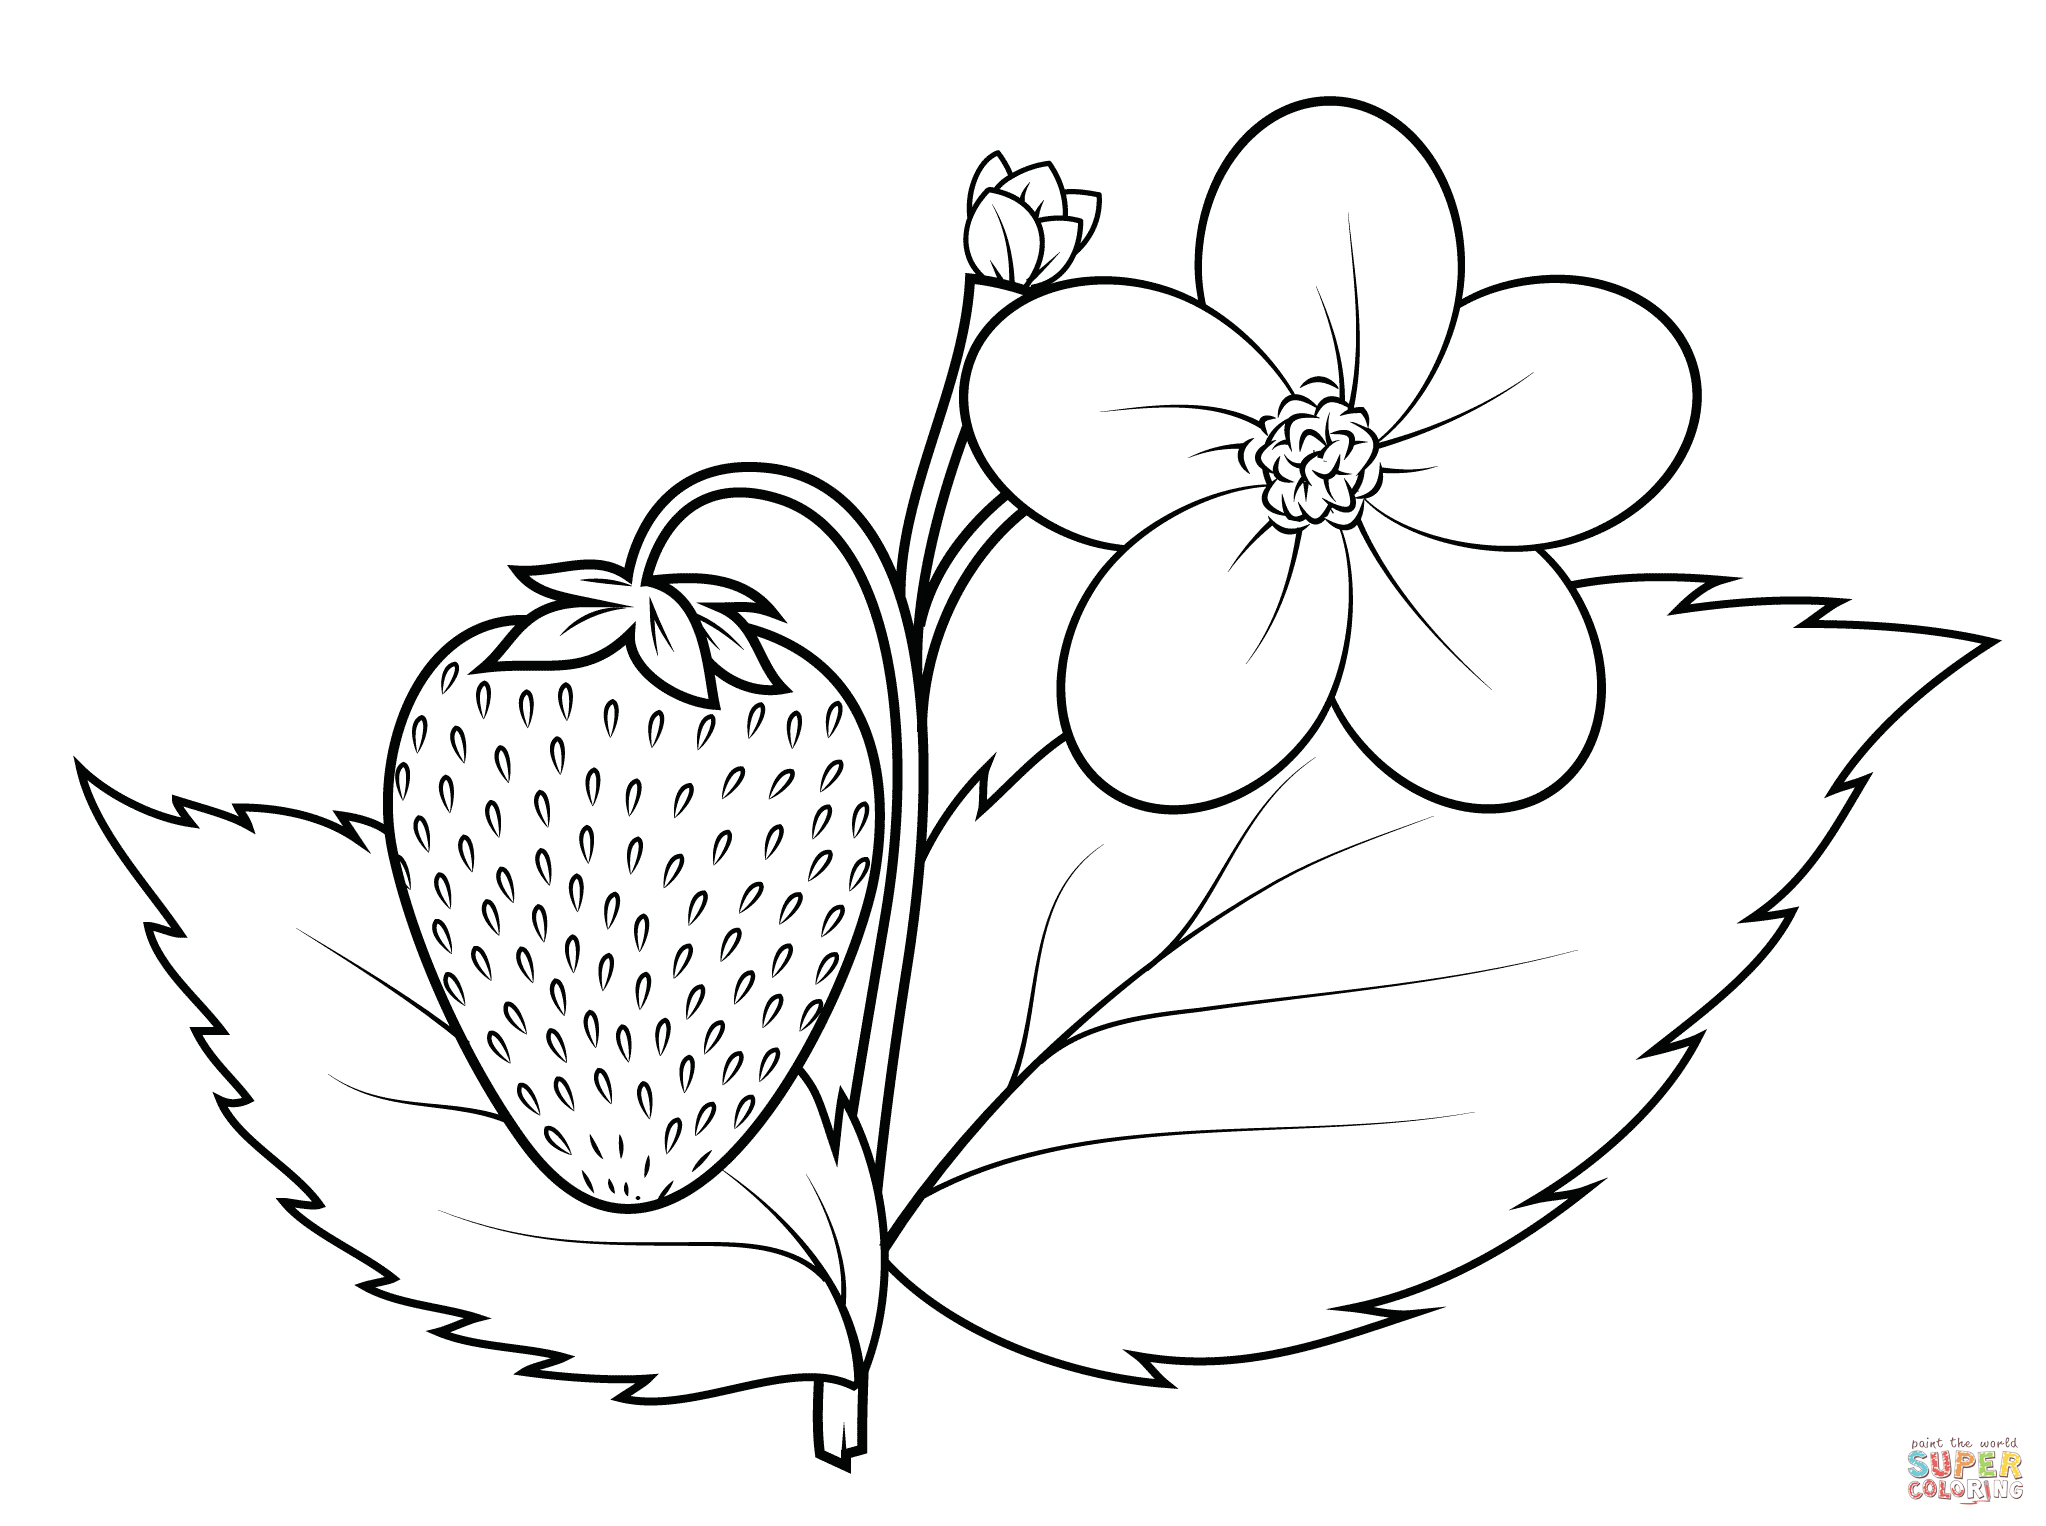 strawberry coloring page free printable fruit coloring pages for kids coloring strawberry page